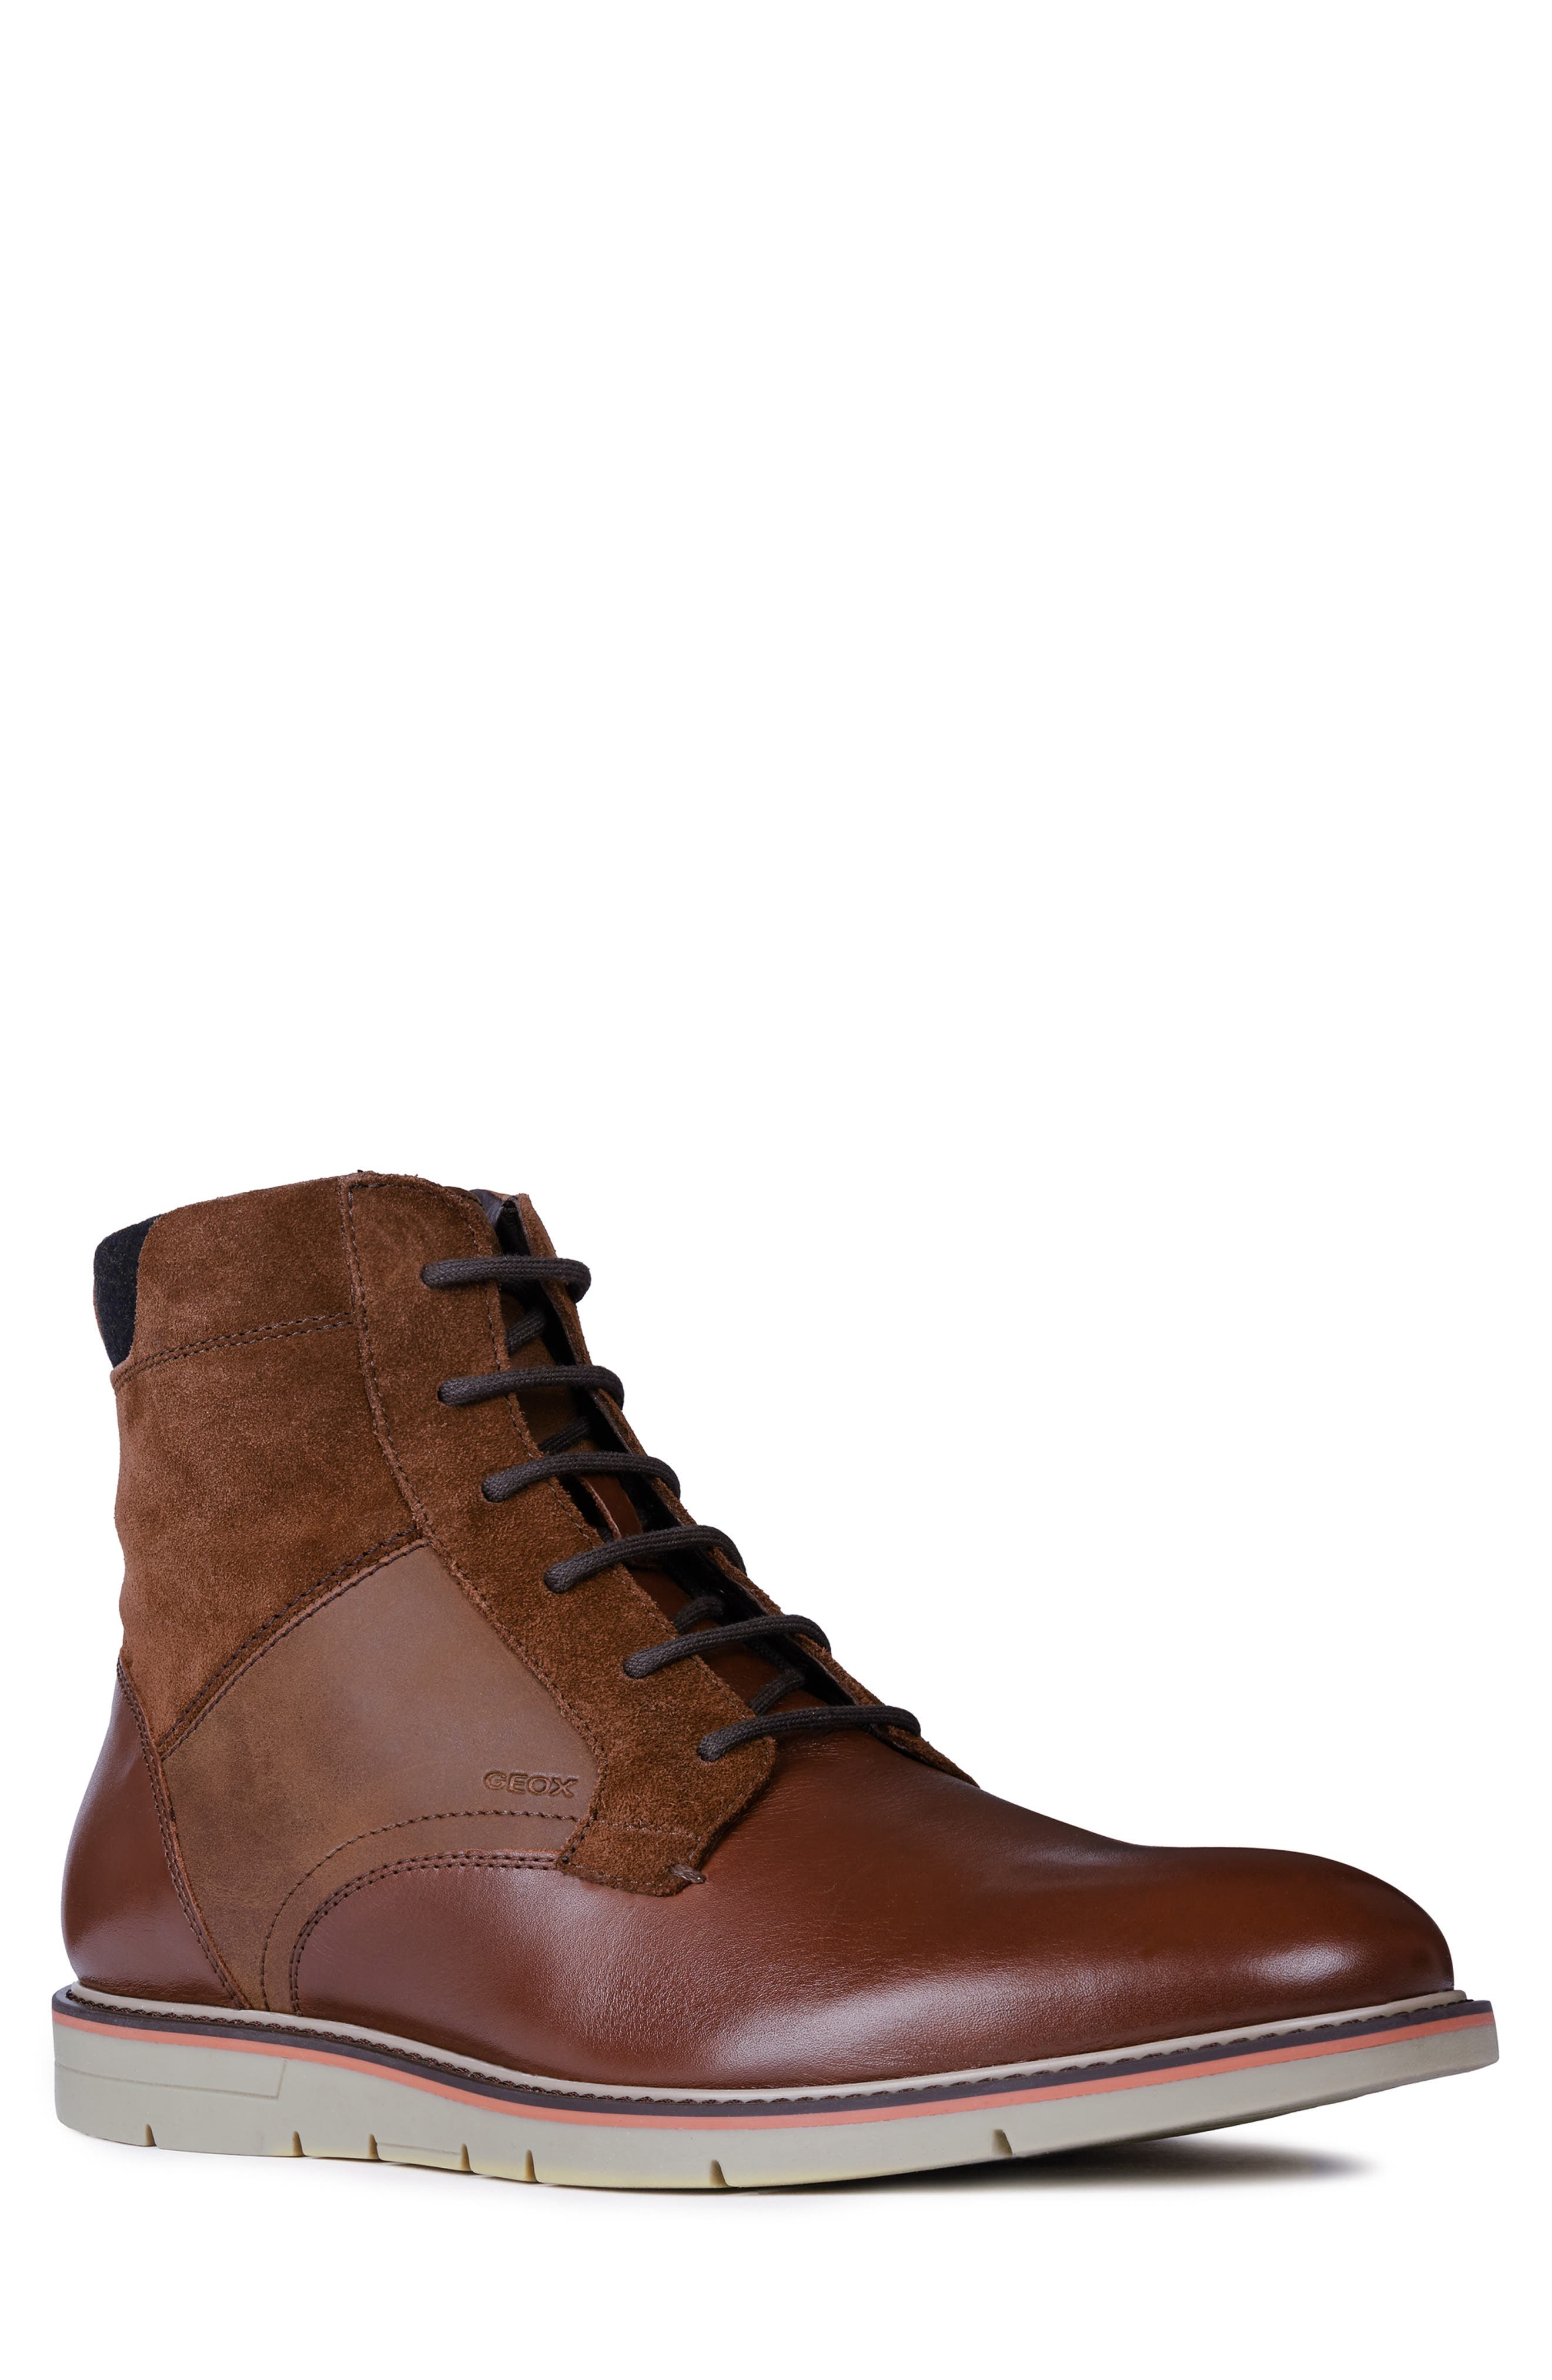 Geox Uvet Lace-Up Boot, Brown